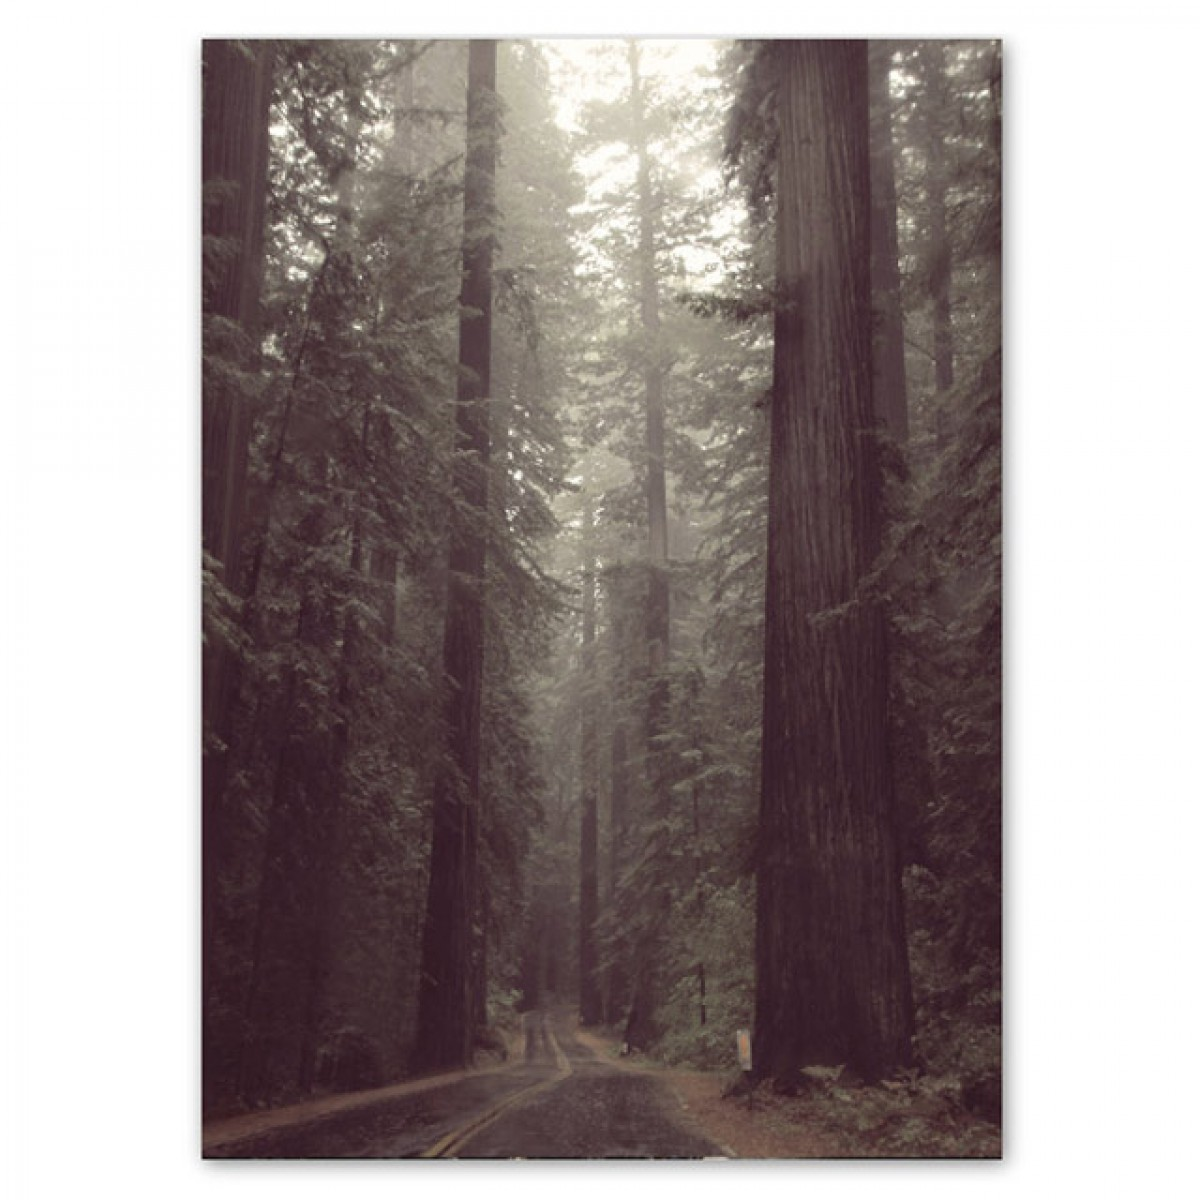 Human Empire Redwood Forest Poster (50x70cm)